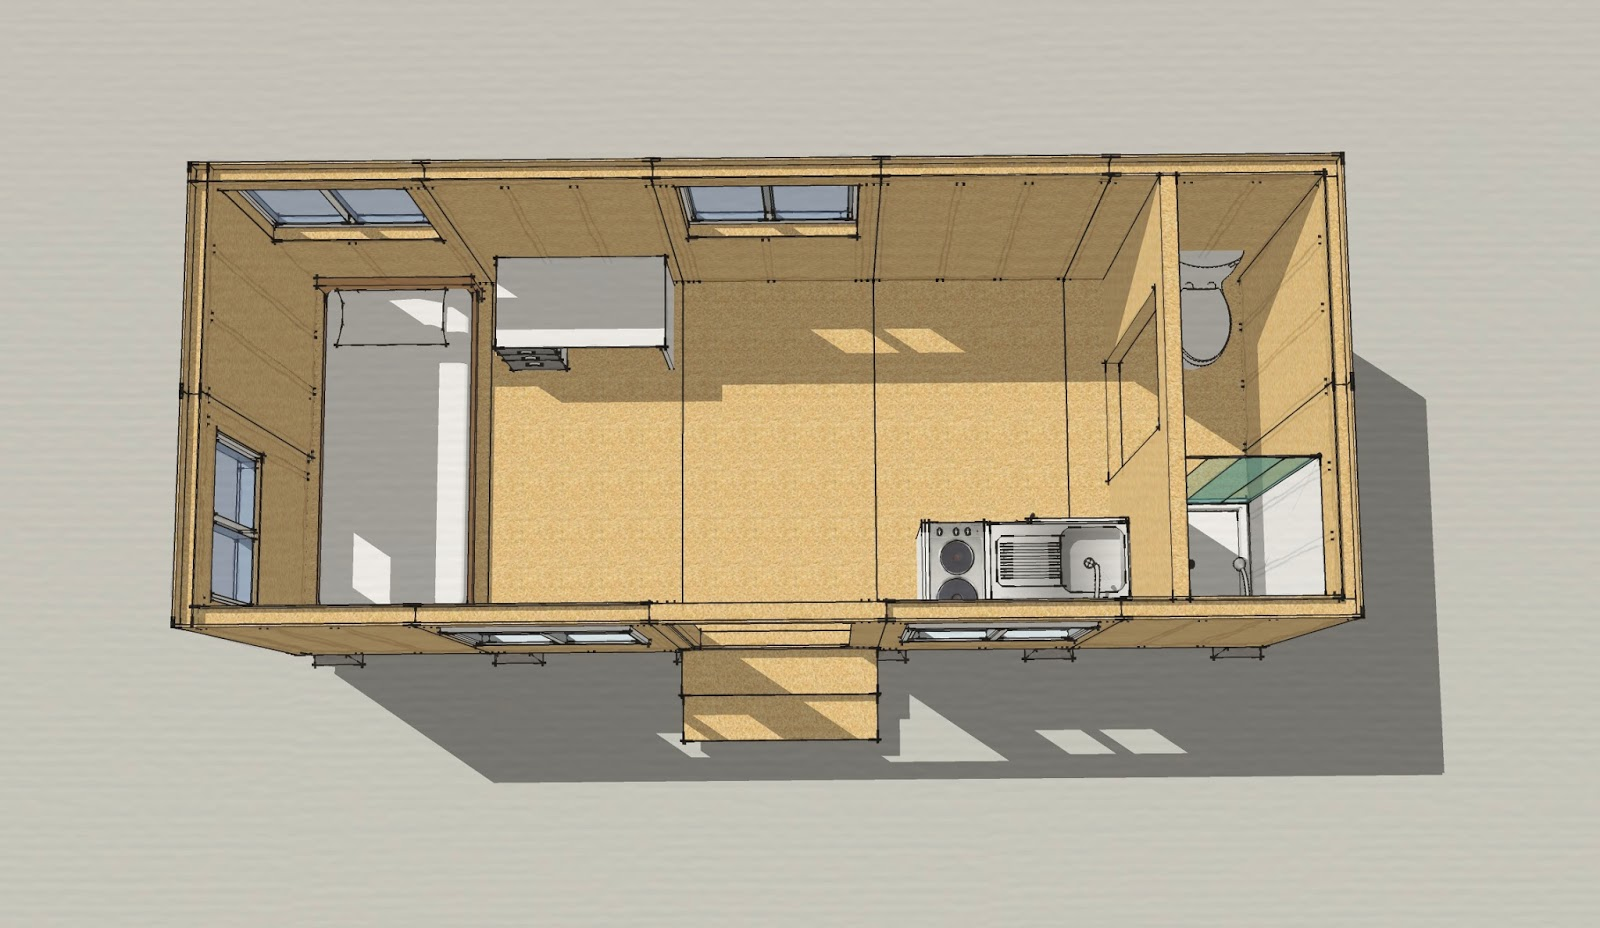 simple illustrative drawing of an 8x20 tiny house that meets the 2012 irc minimum area requirements - Tiny Dwellings